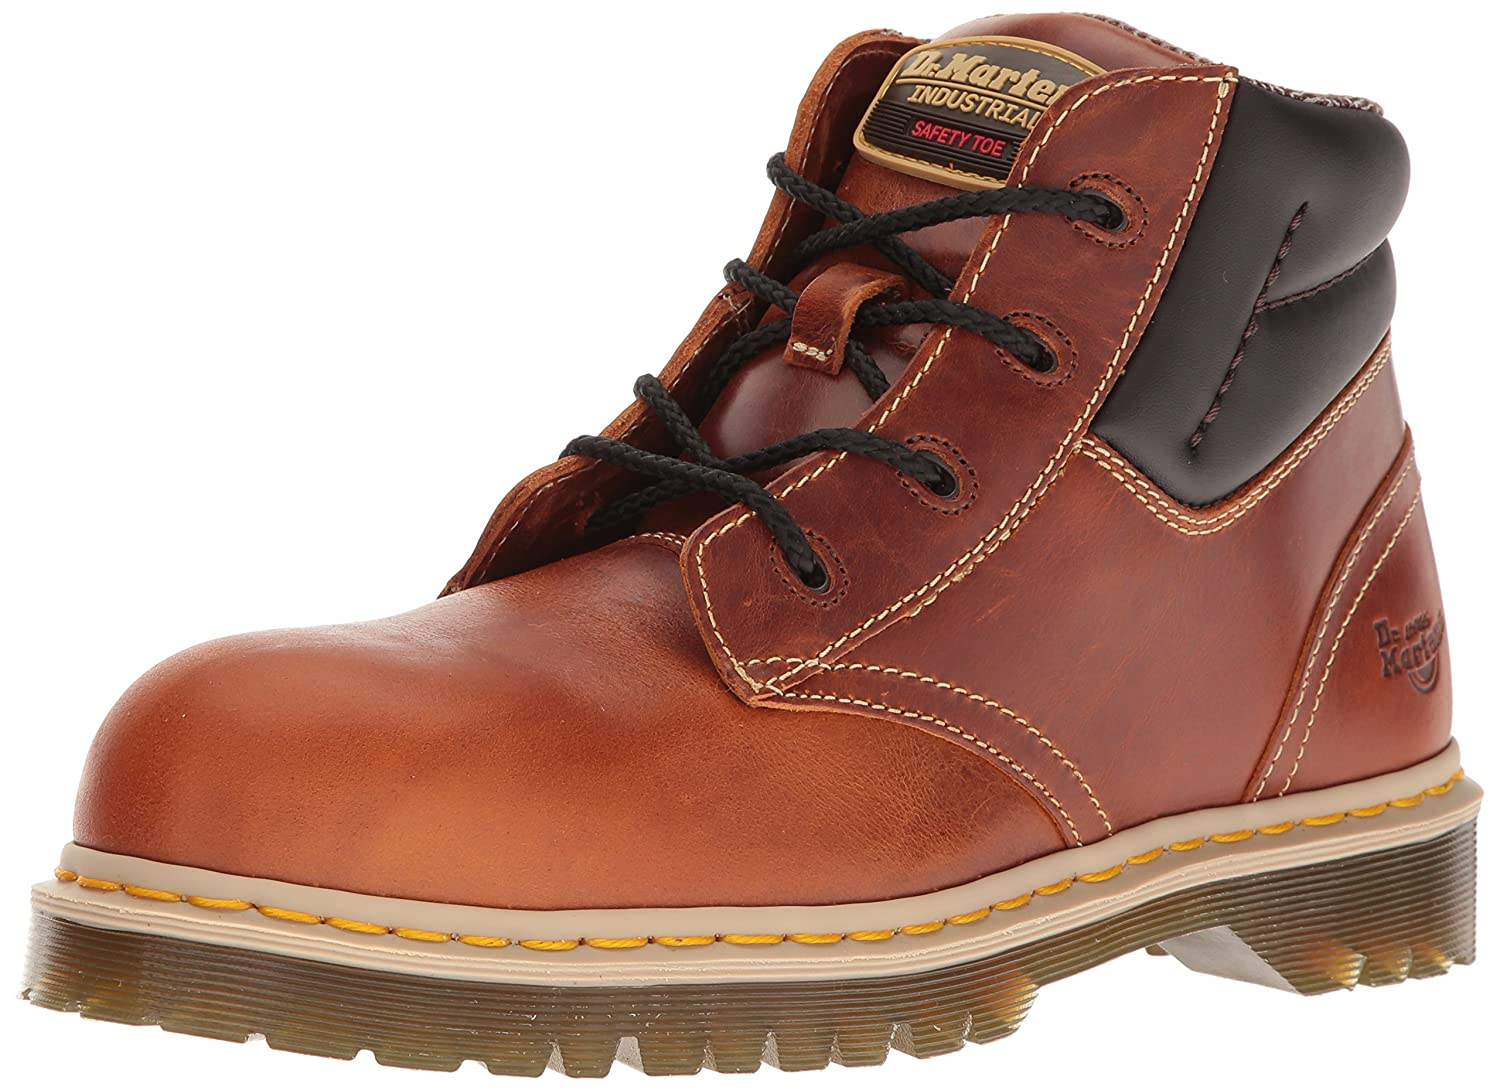 038b58a8d61 Dr. Martens Unisex Icon 7B09 Steel Toe 4 Eye Leather Boots